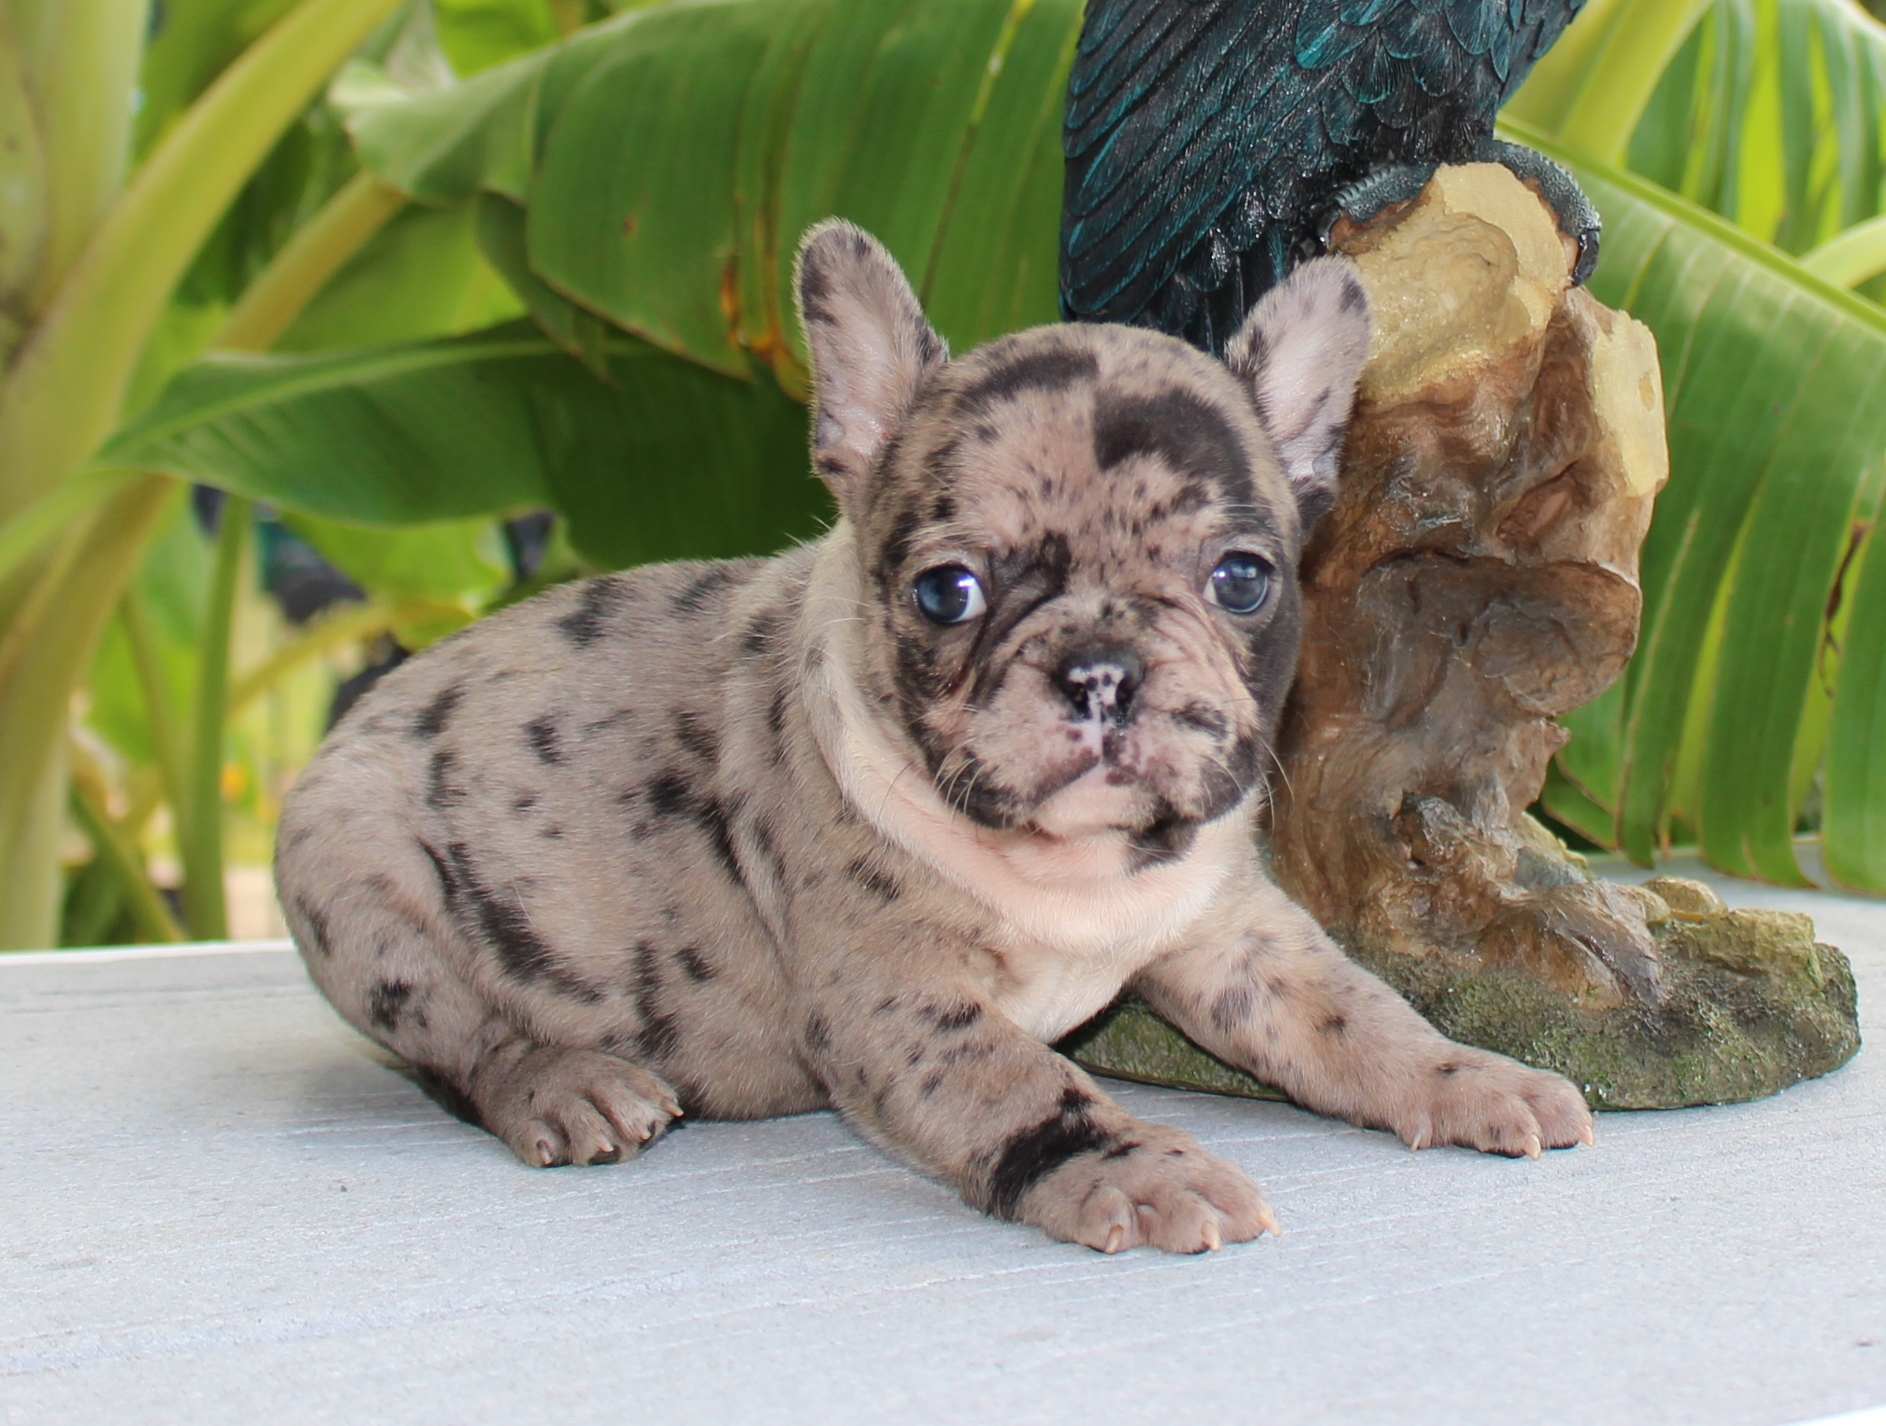 #FrenchBulldogPuppies #MerleFrenchBulldogPuppies